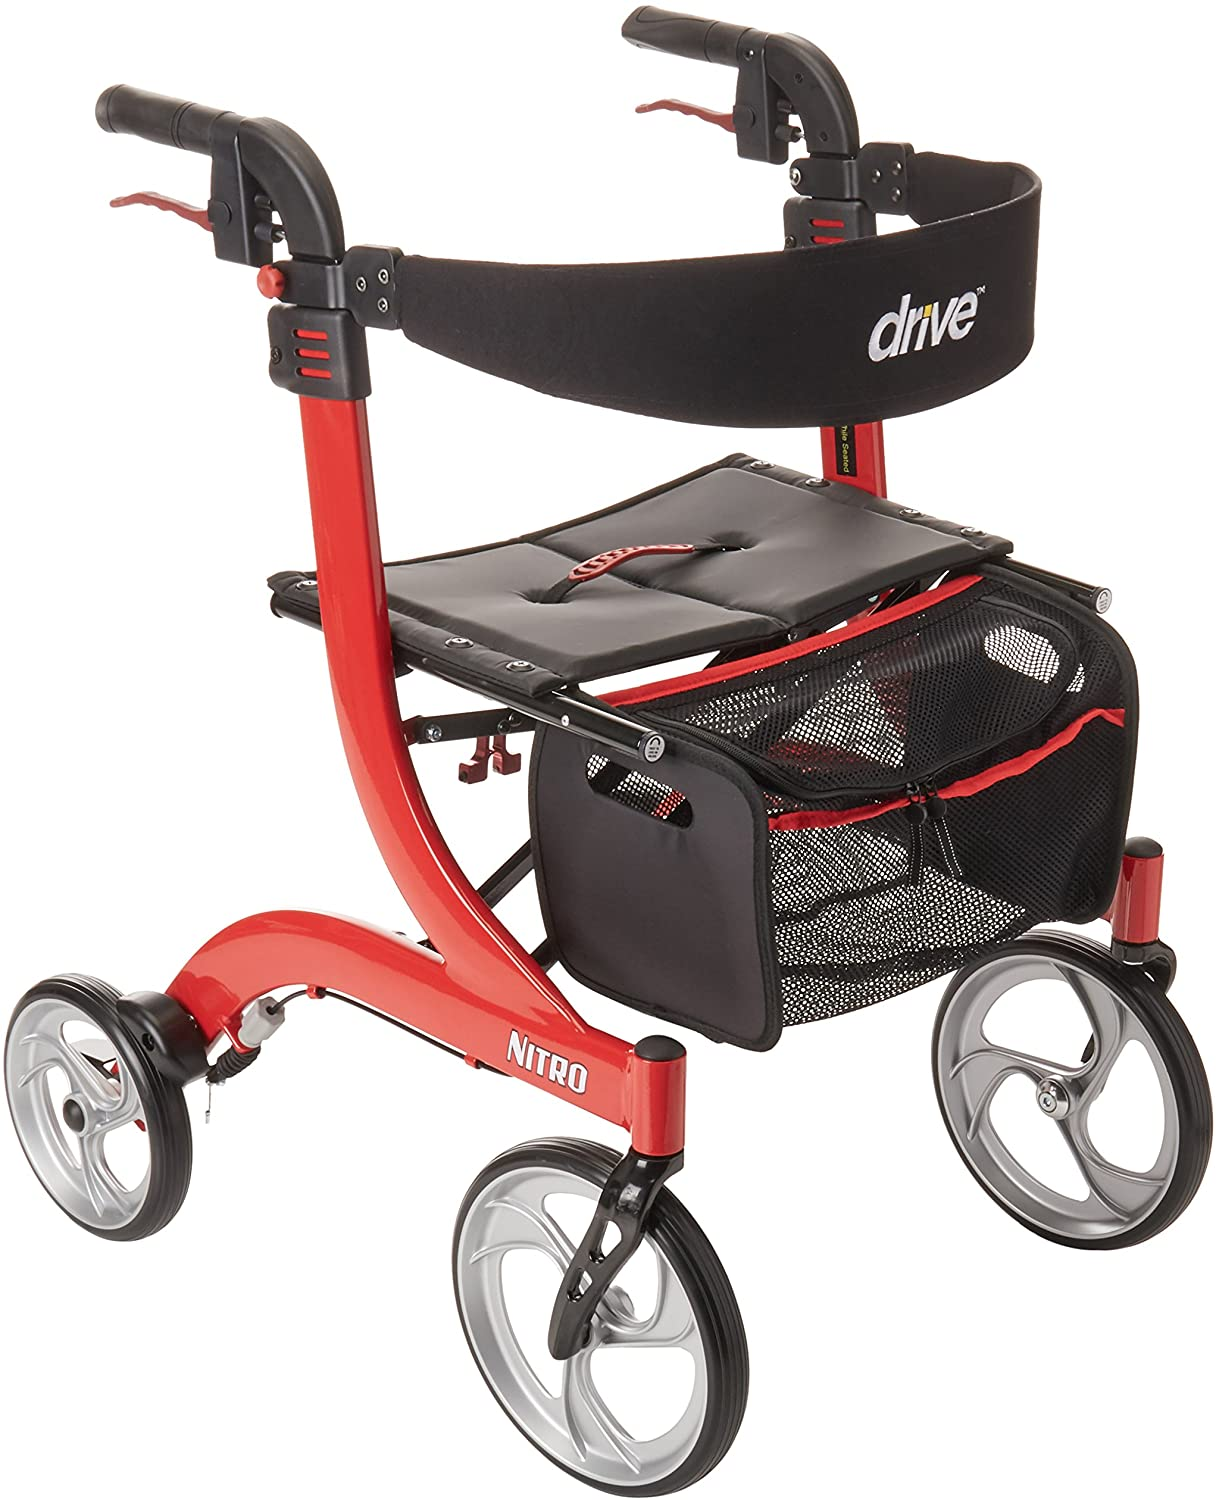 Drive Medical Nitro Euro Style Red Rollator Walker, Red 81KGbVK1knL